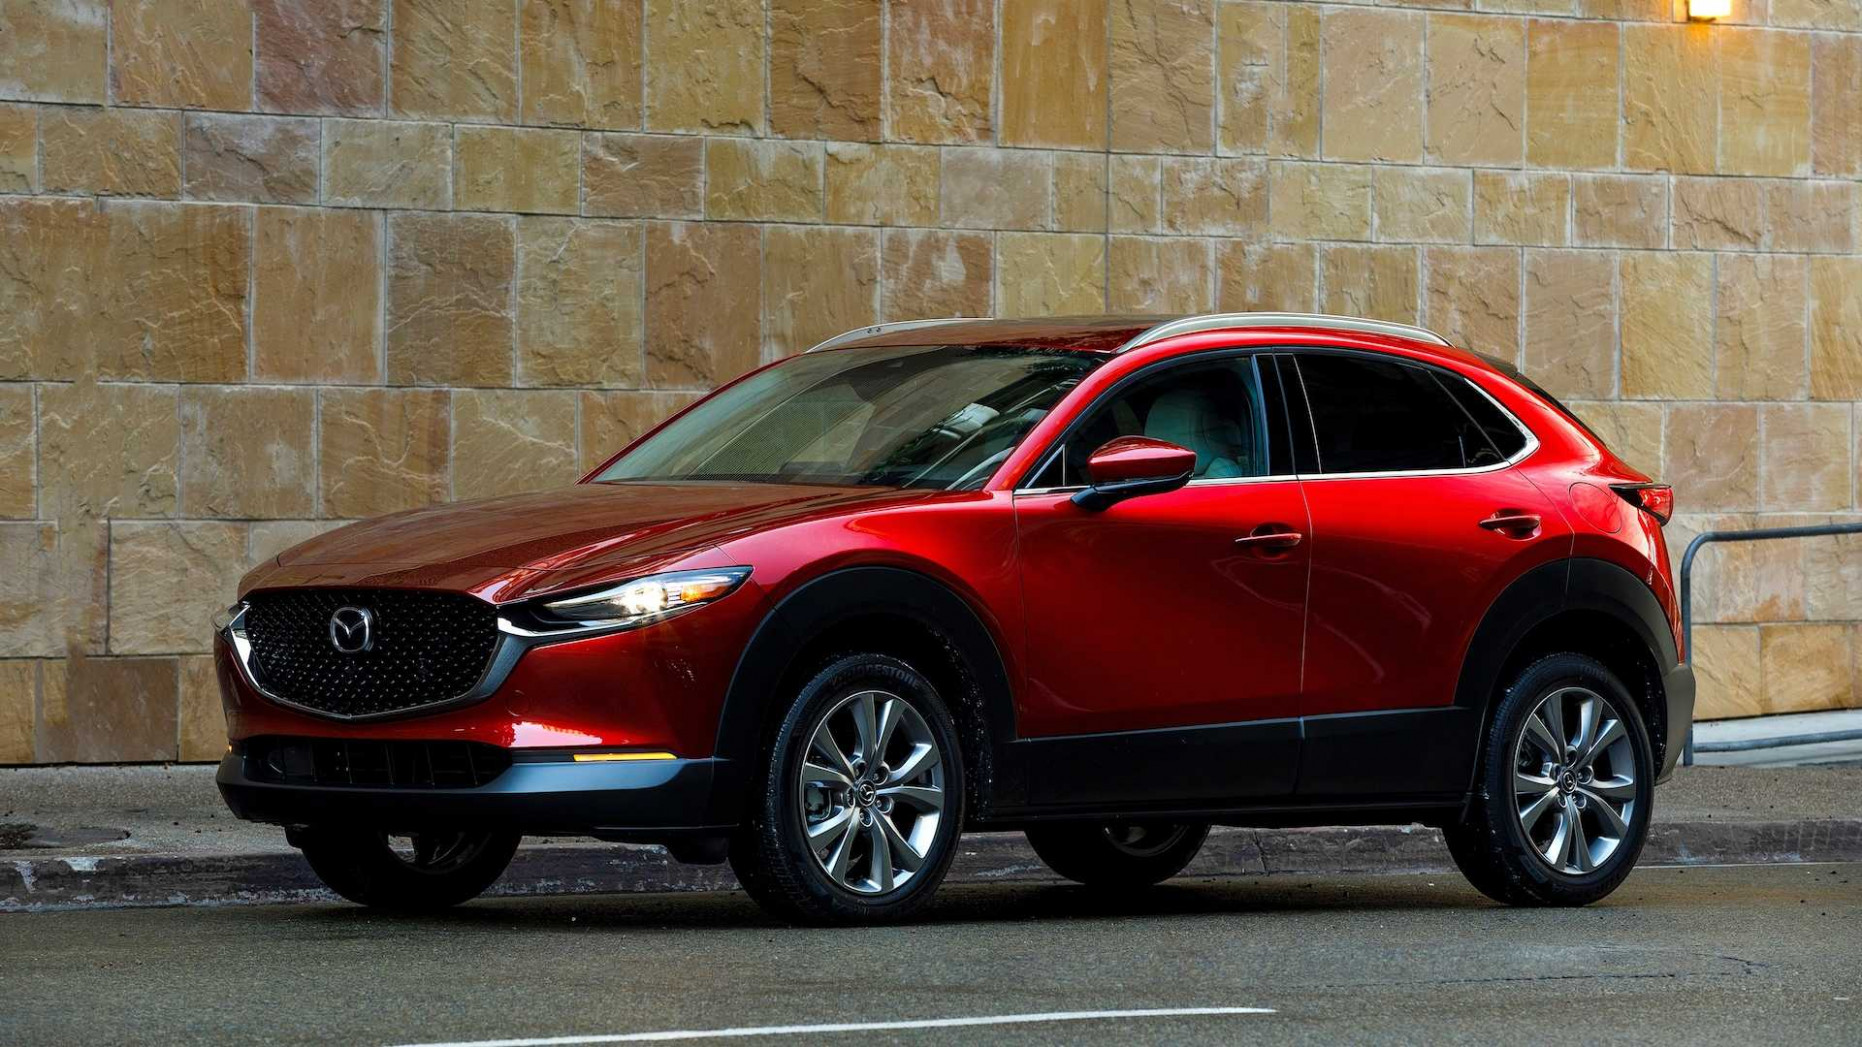 10 Mazda CX-10 First Drive Review: Subcompact No Longer Means Subpar - 2020 mazda lane keep assist